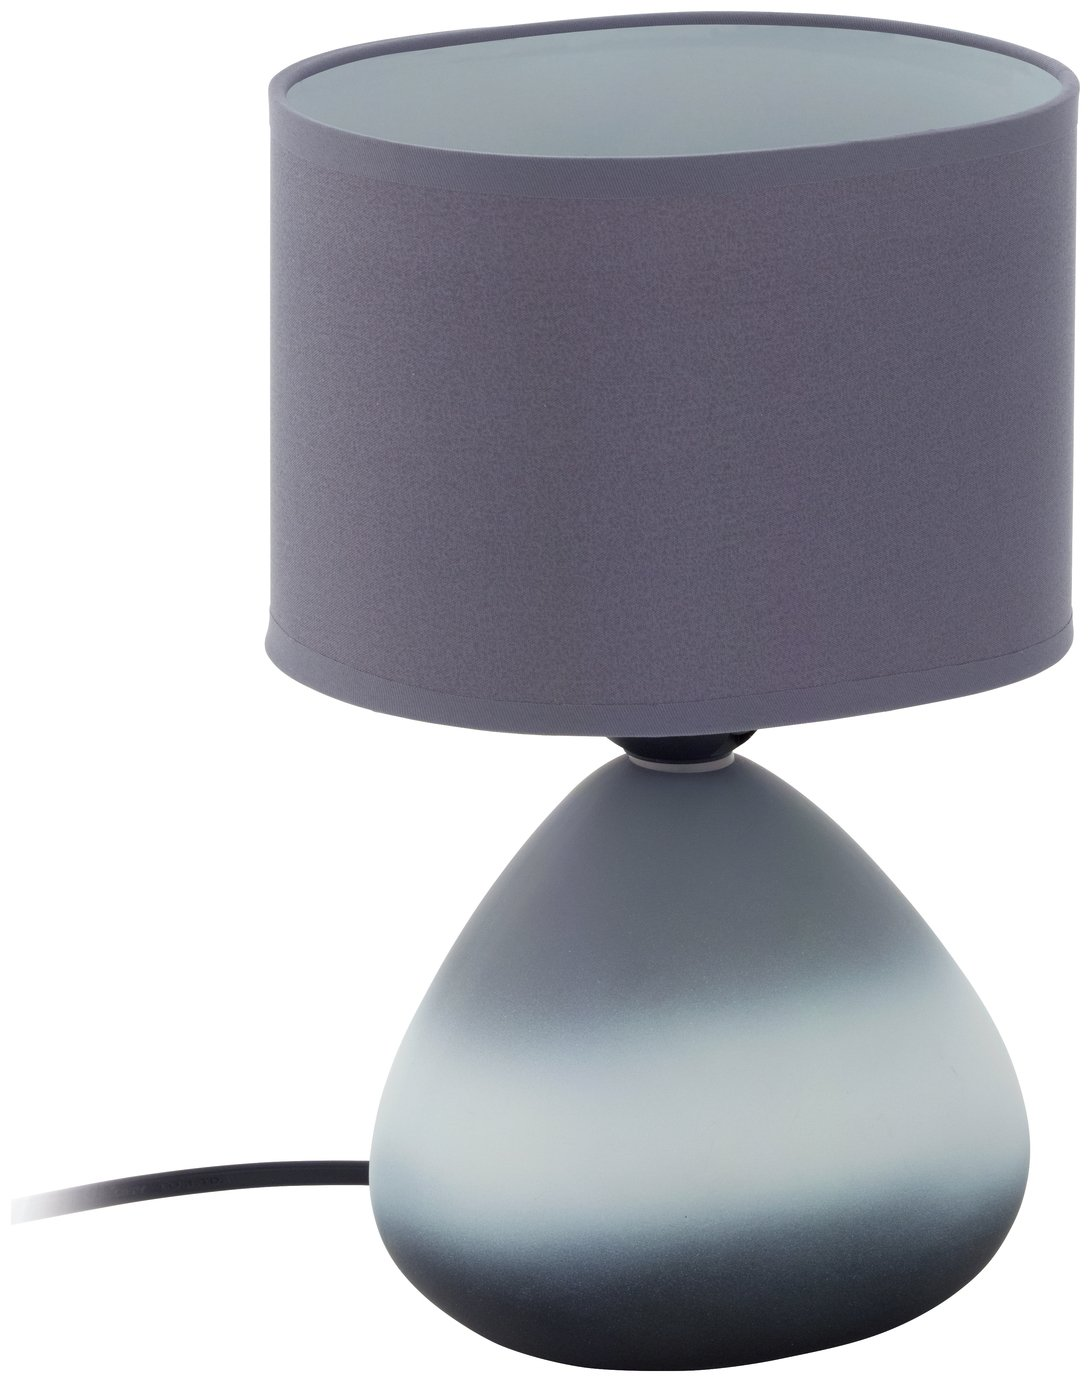 Eglo Bonilla Ceramic Table Lamp - Grey